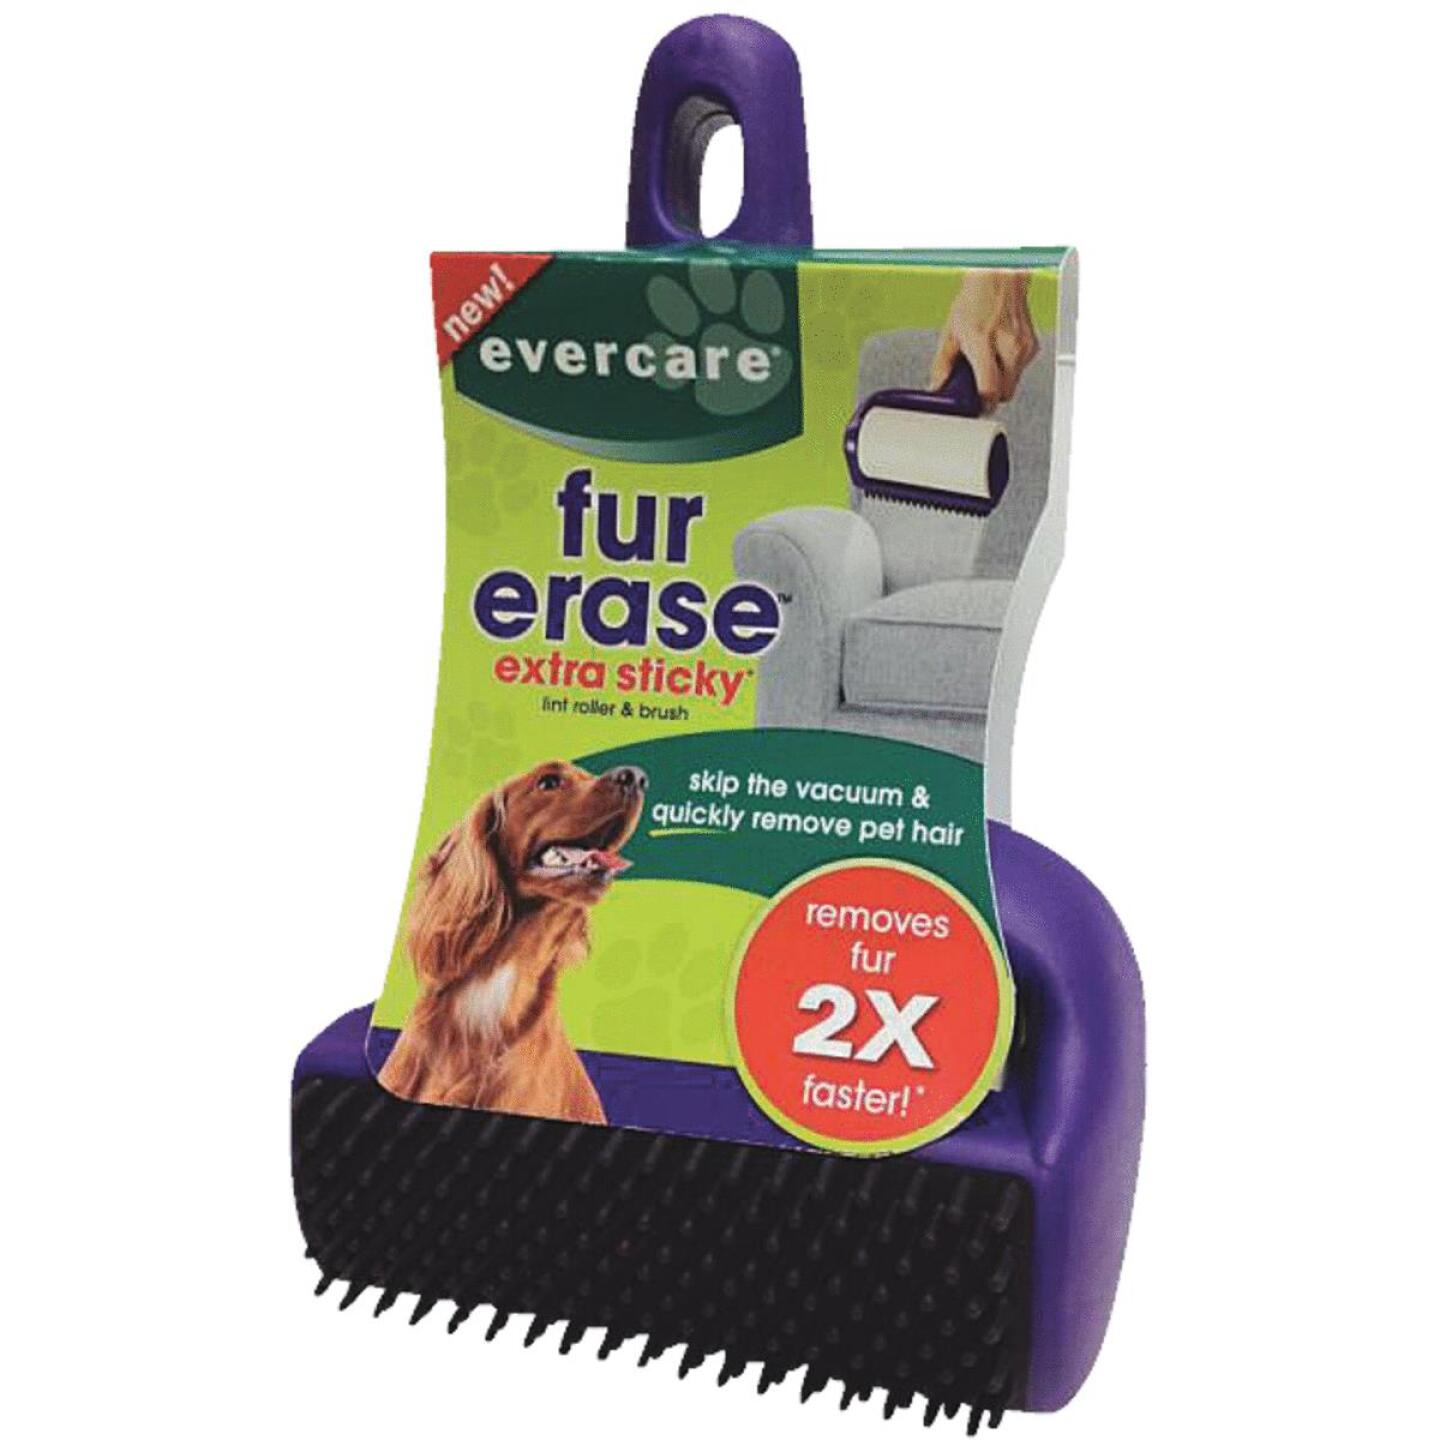 Evercare Fur Erase 4 In. Roller with Brush Pet Hair Remover Image 1